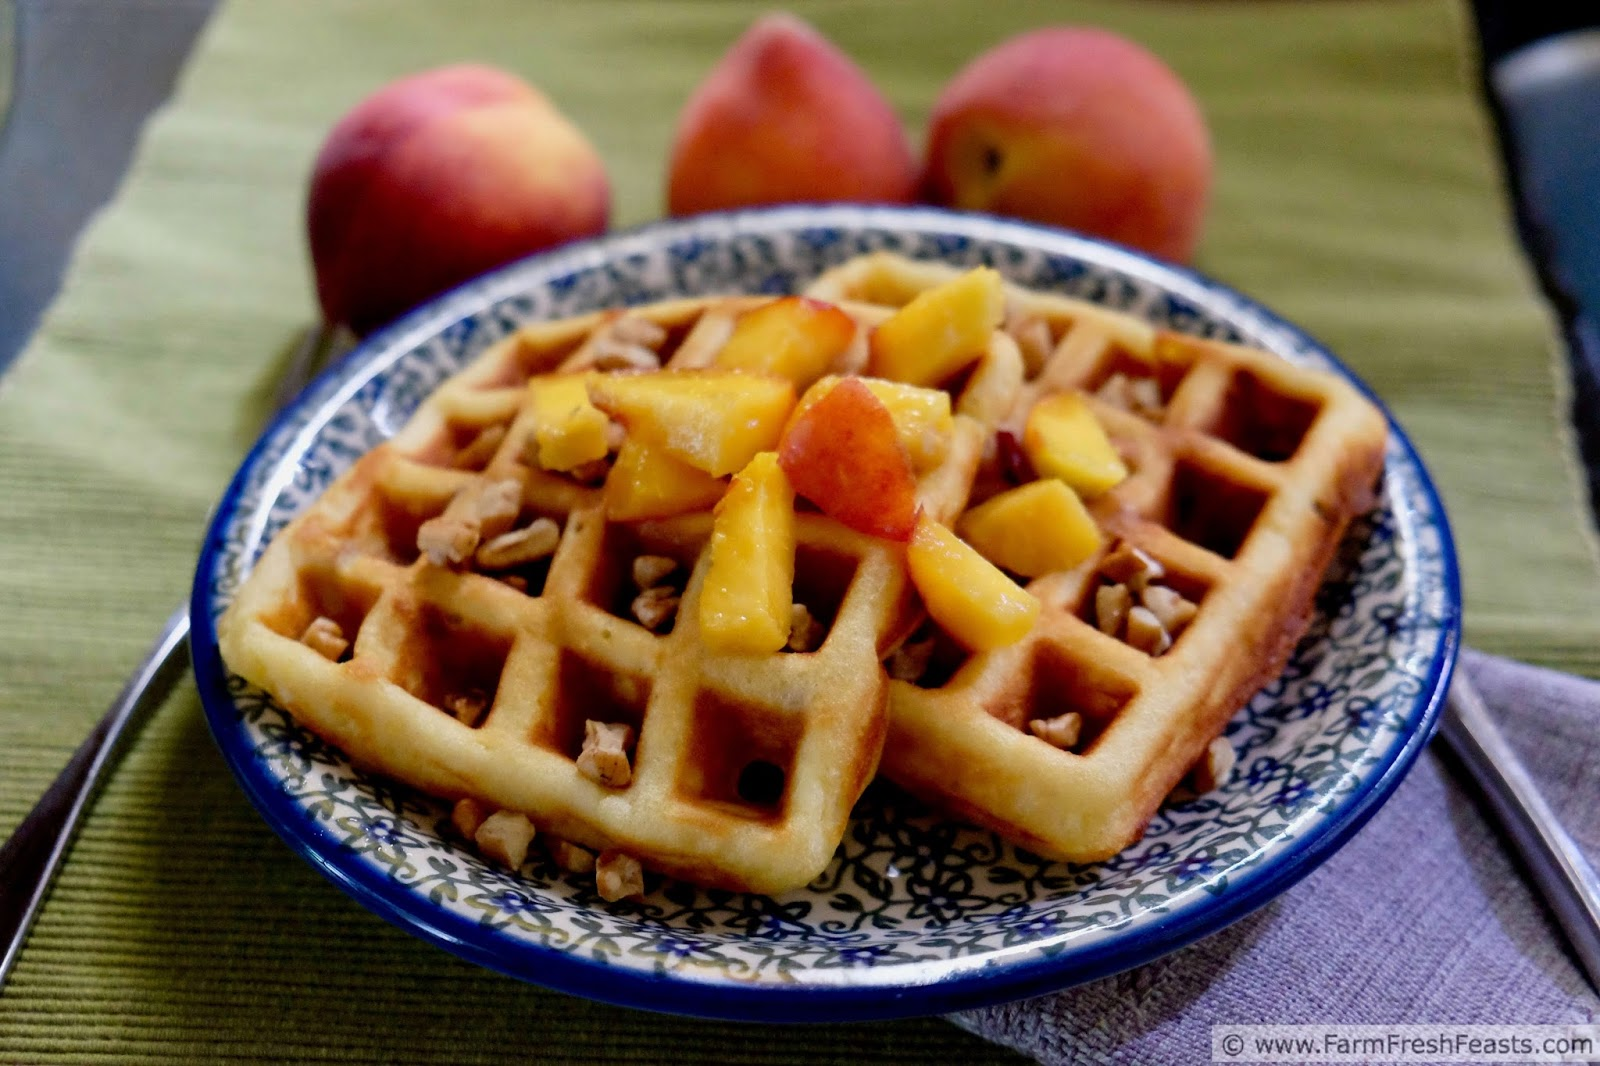 a plate of peach and pecan waffles